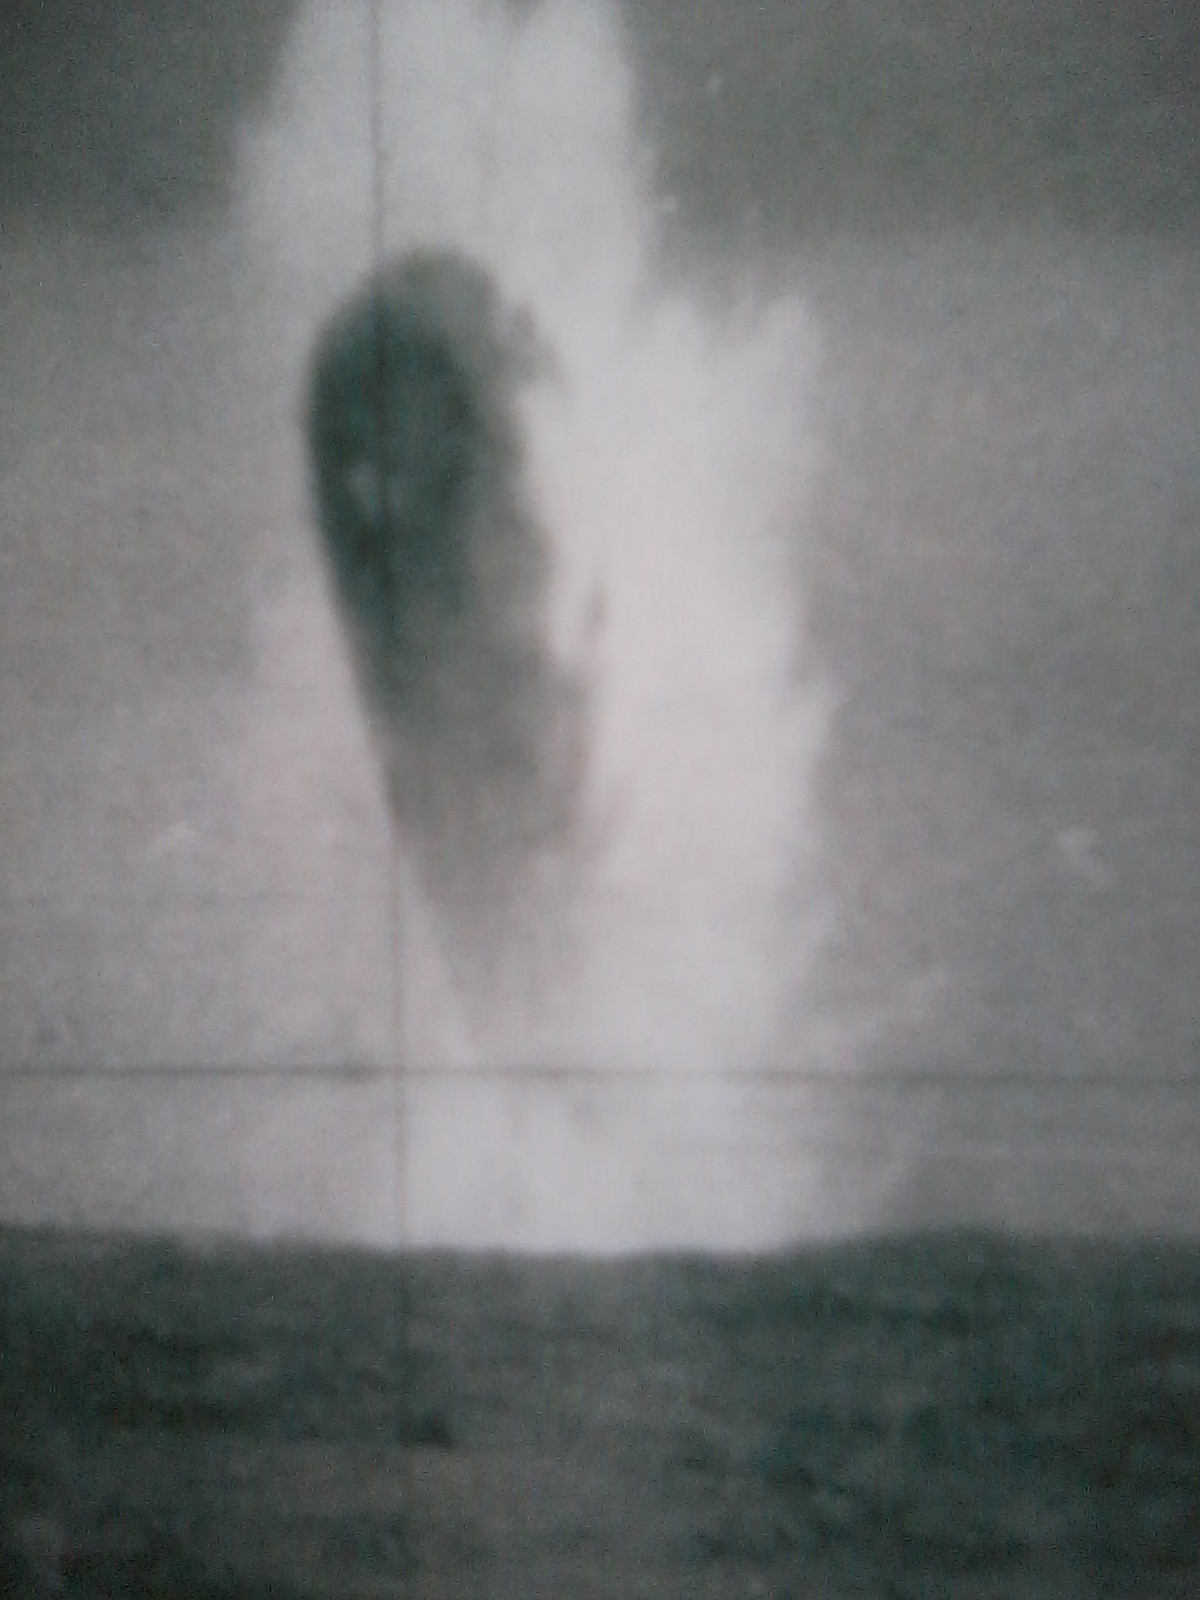 Ufo Sightings Daily Ufos Seen By Us Navy Submarine In